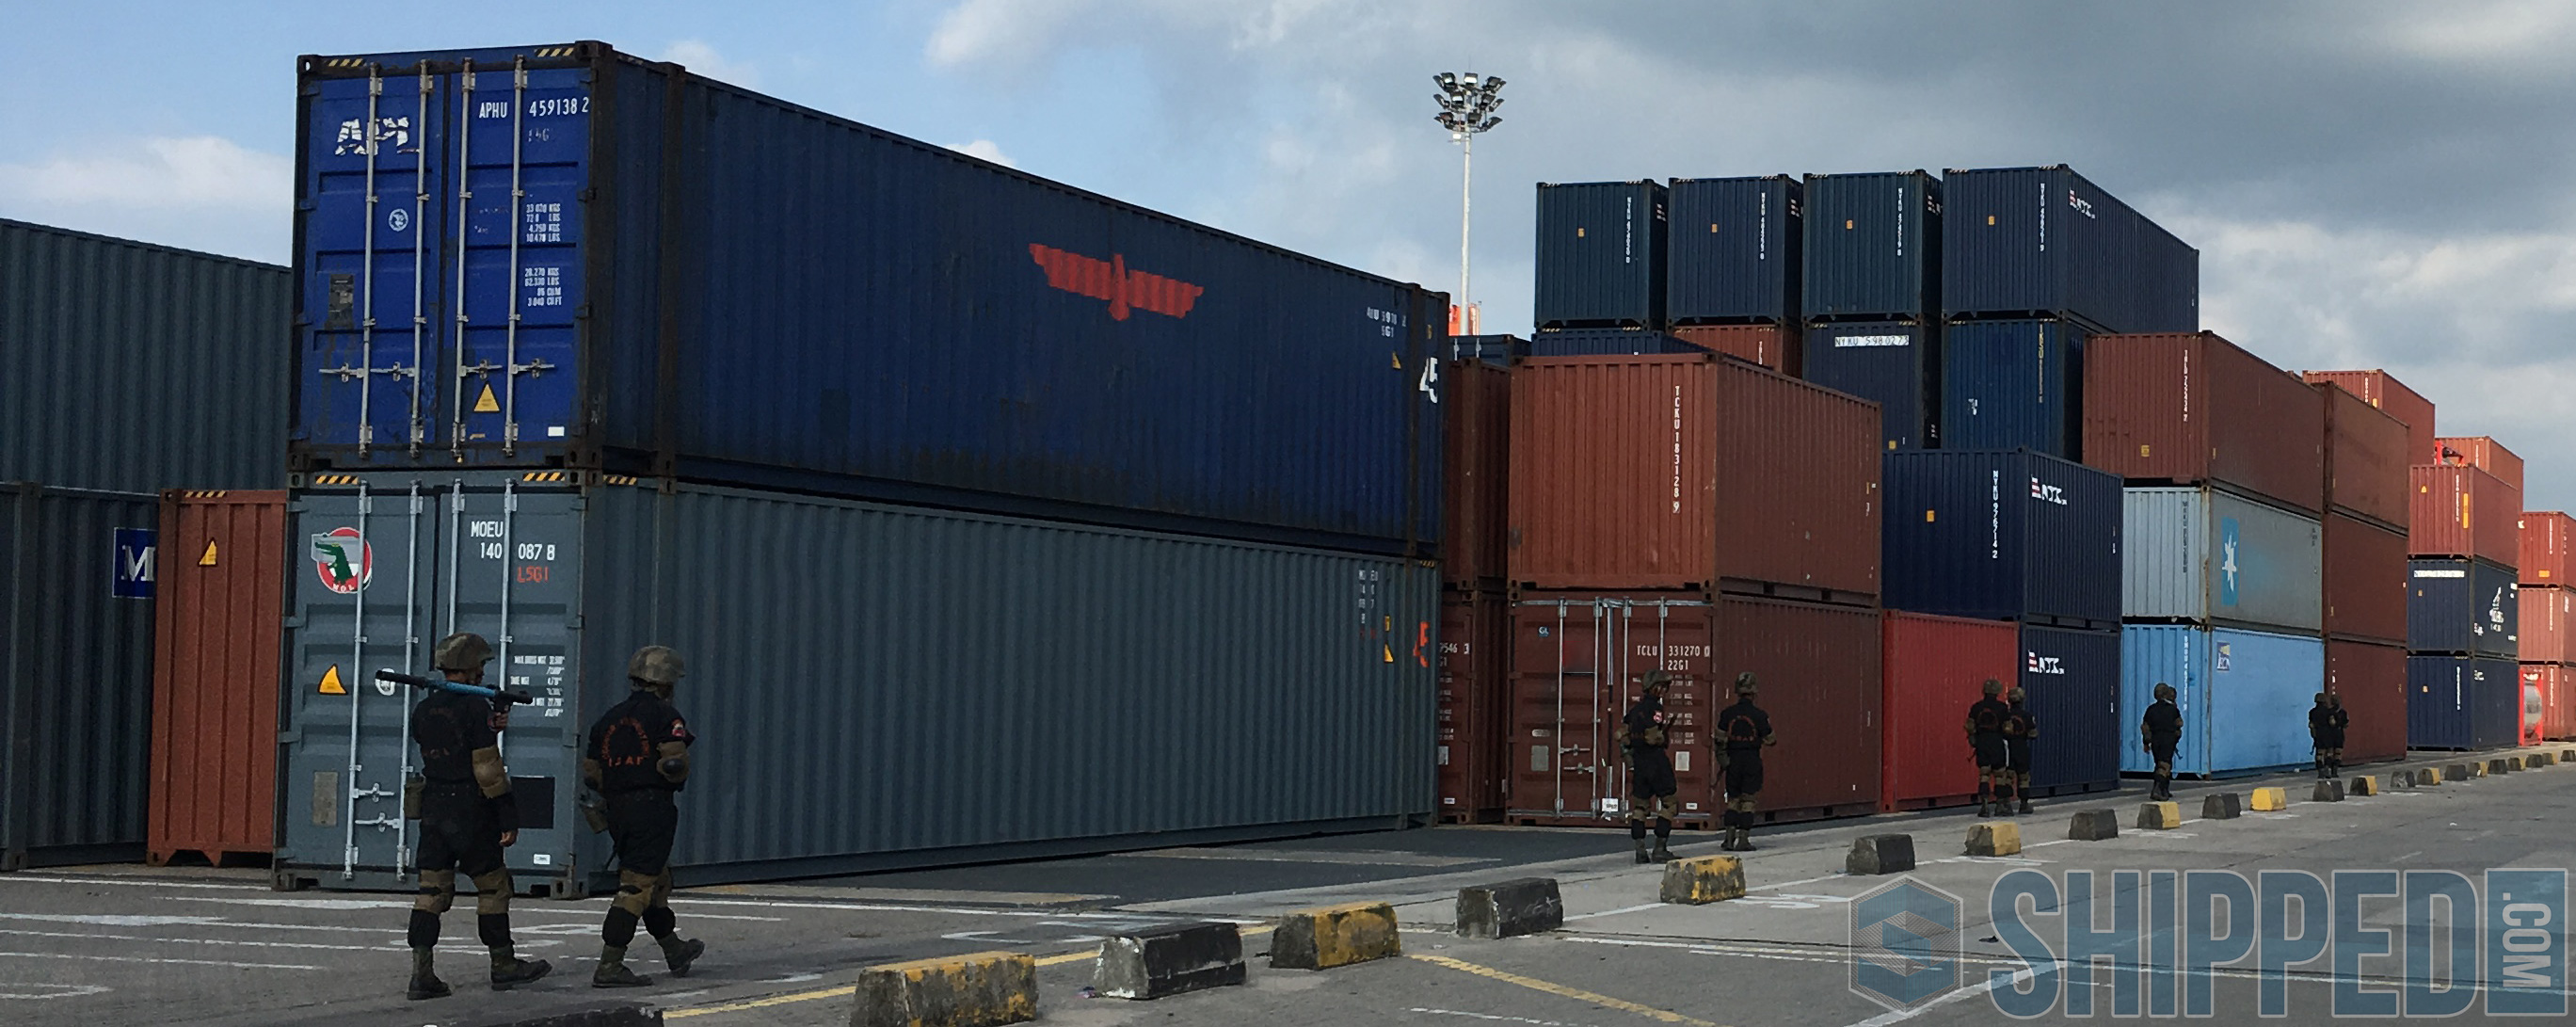 Armed guards patrol a shipping container depot